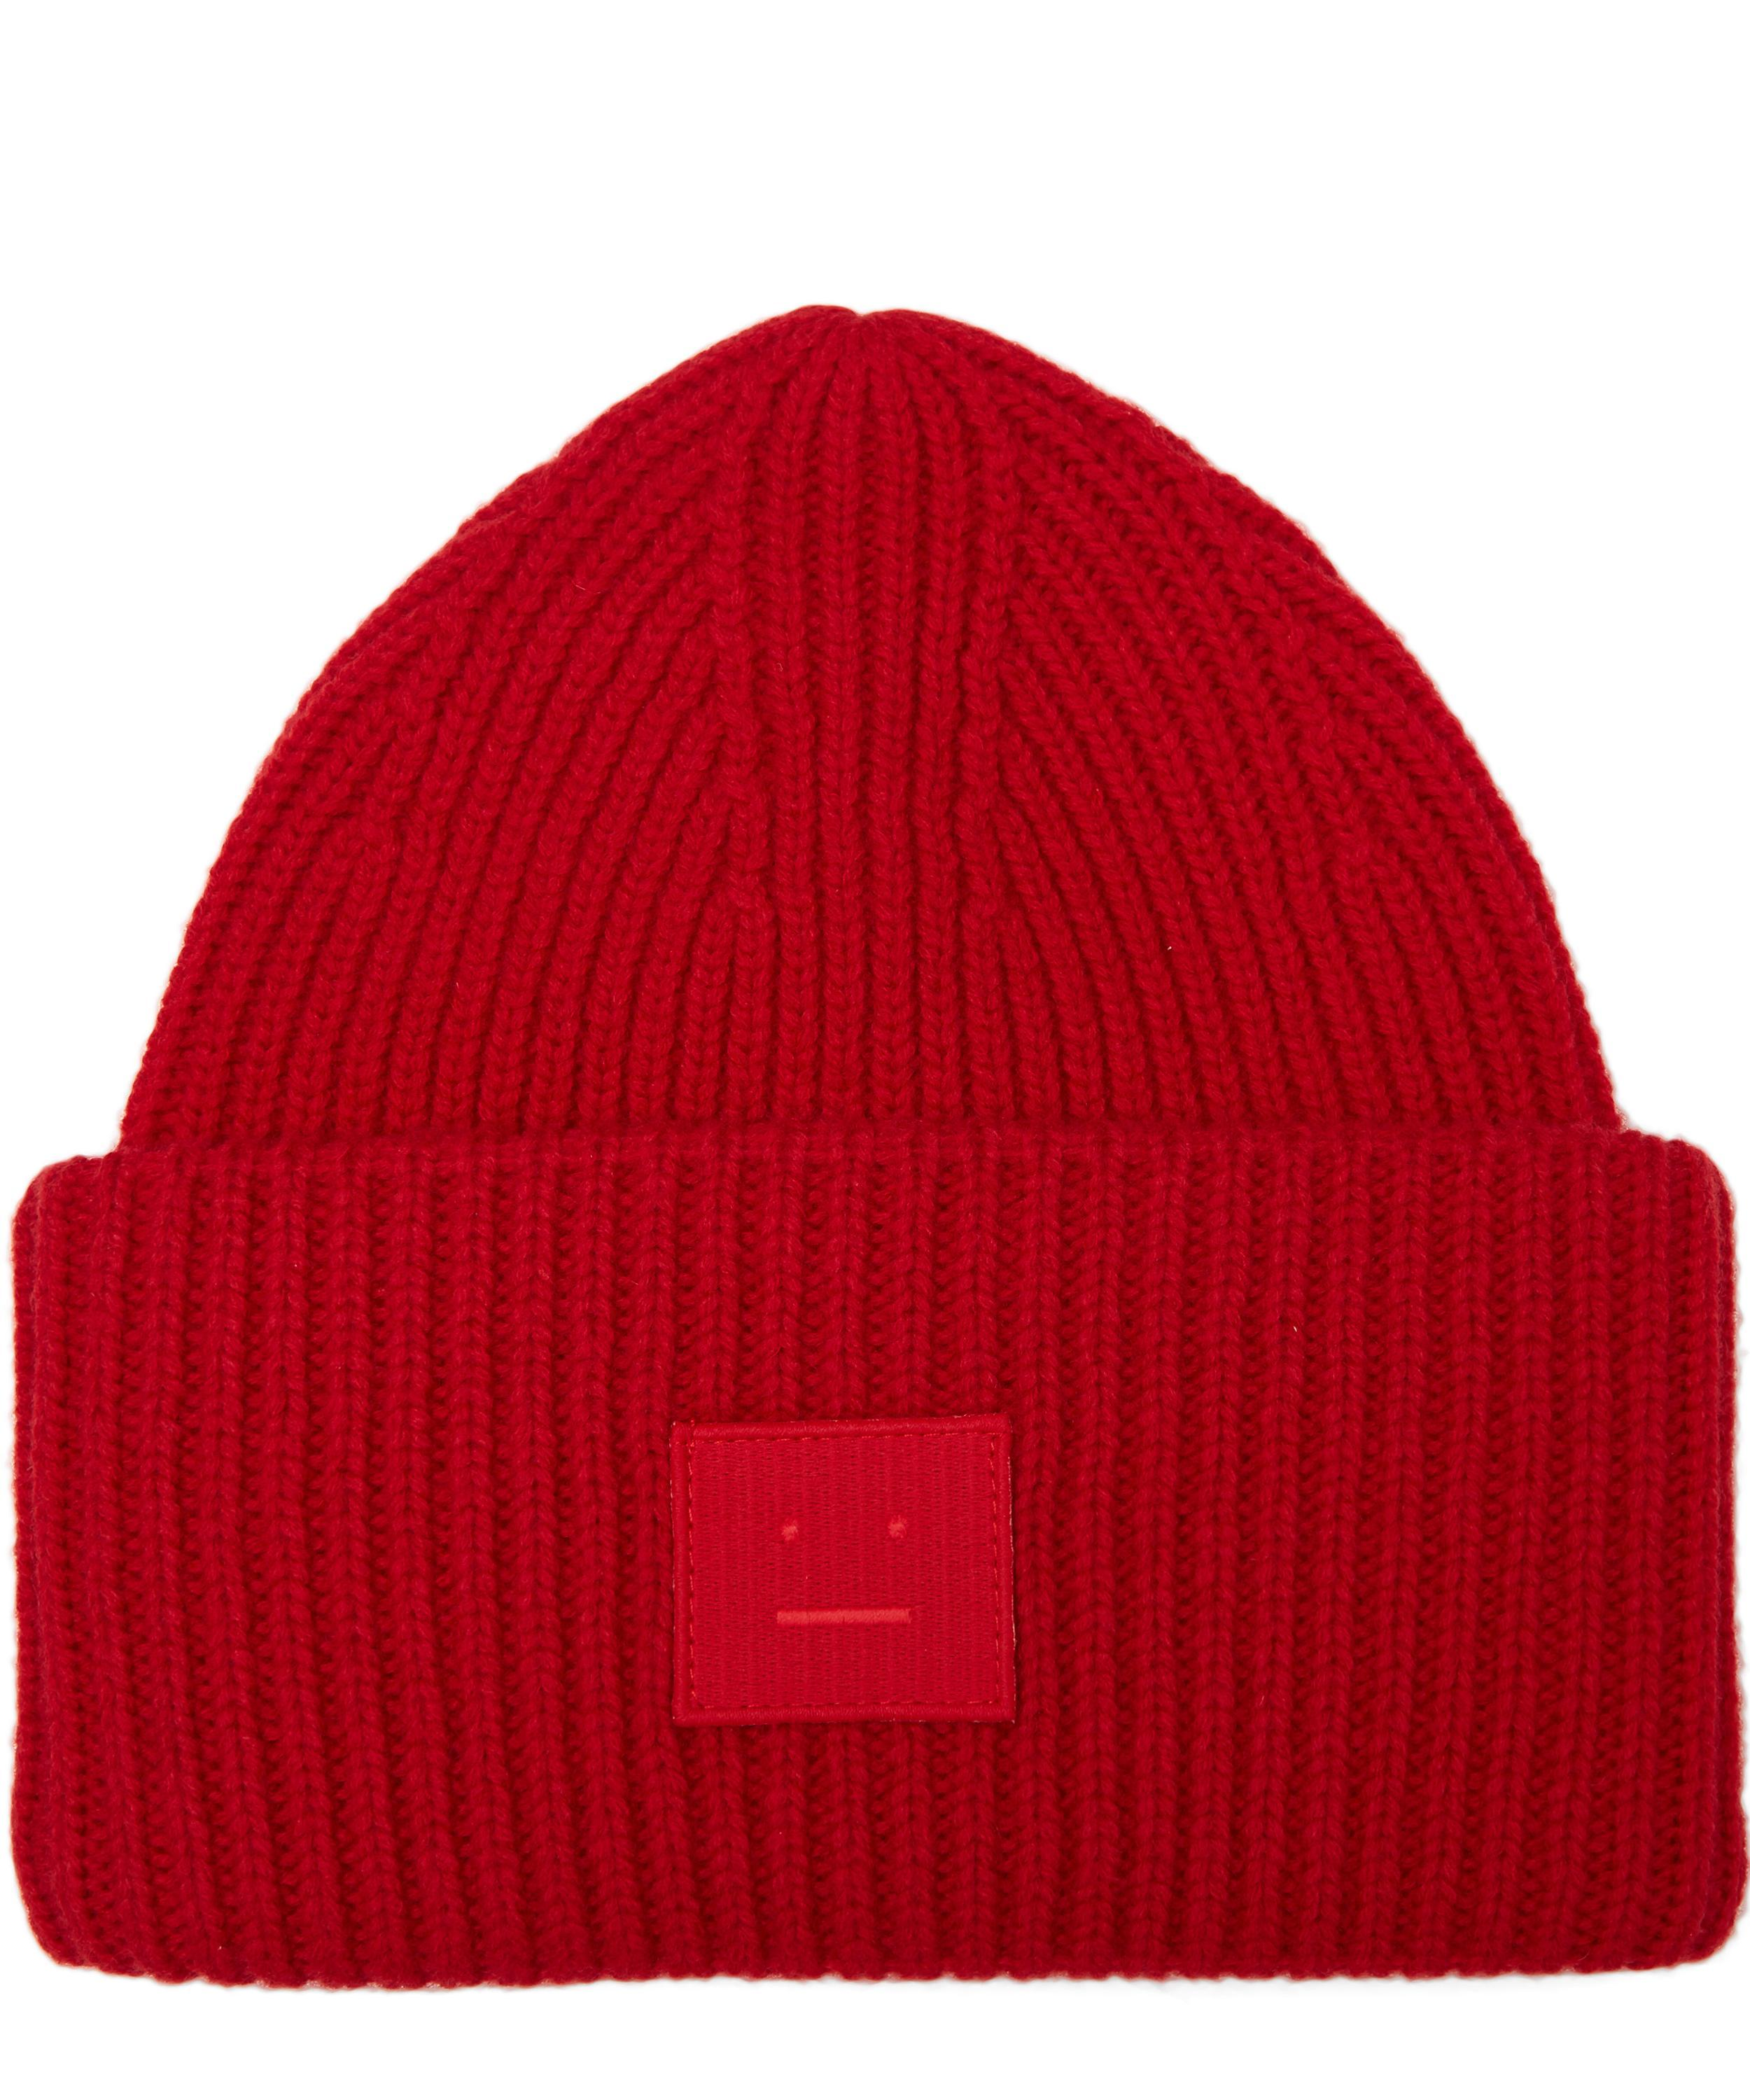 a1fedae8f4a Lyst - Acne Studios Pansy Face Wool Beanie Hat in Red